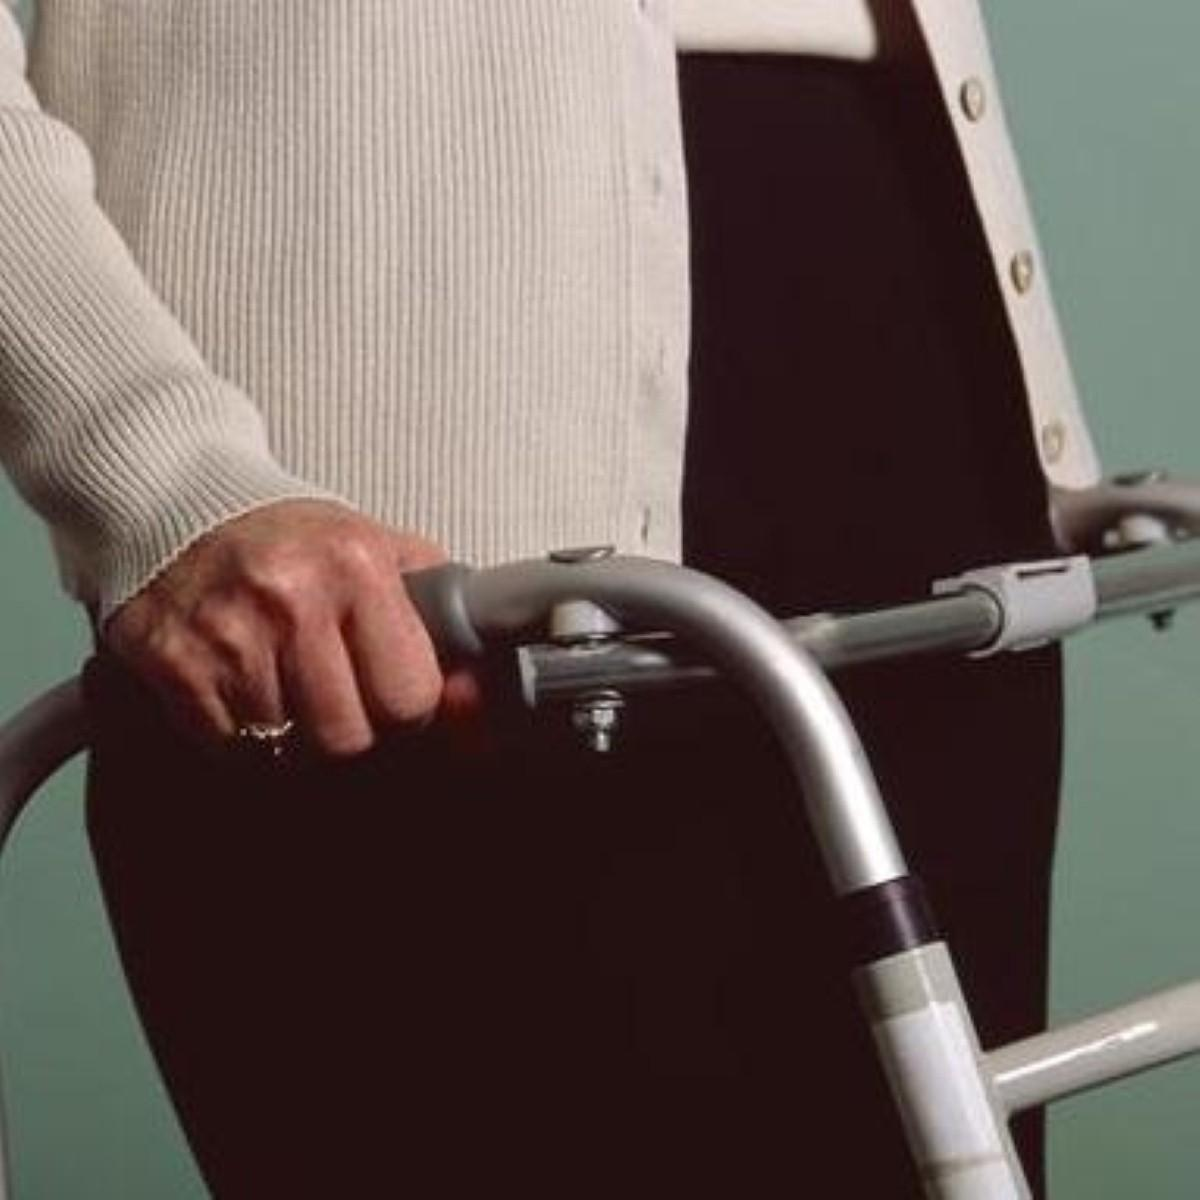 Disability benefit claimants asked for help with survey